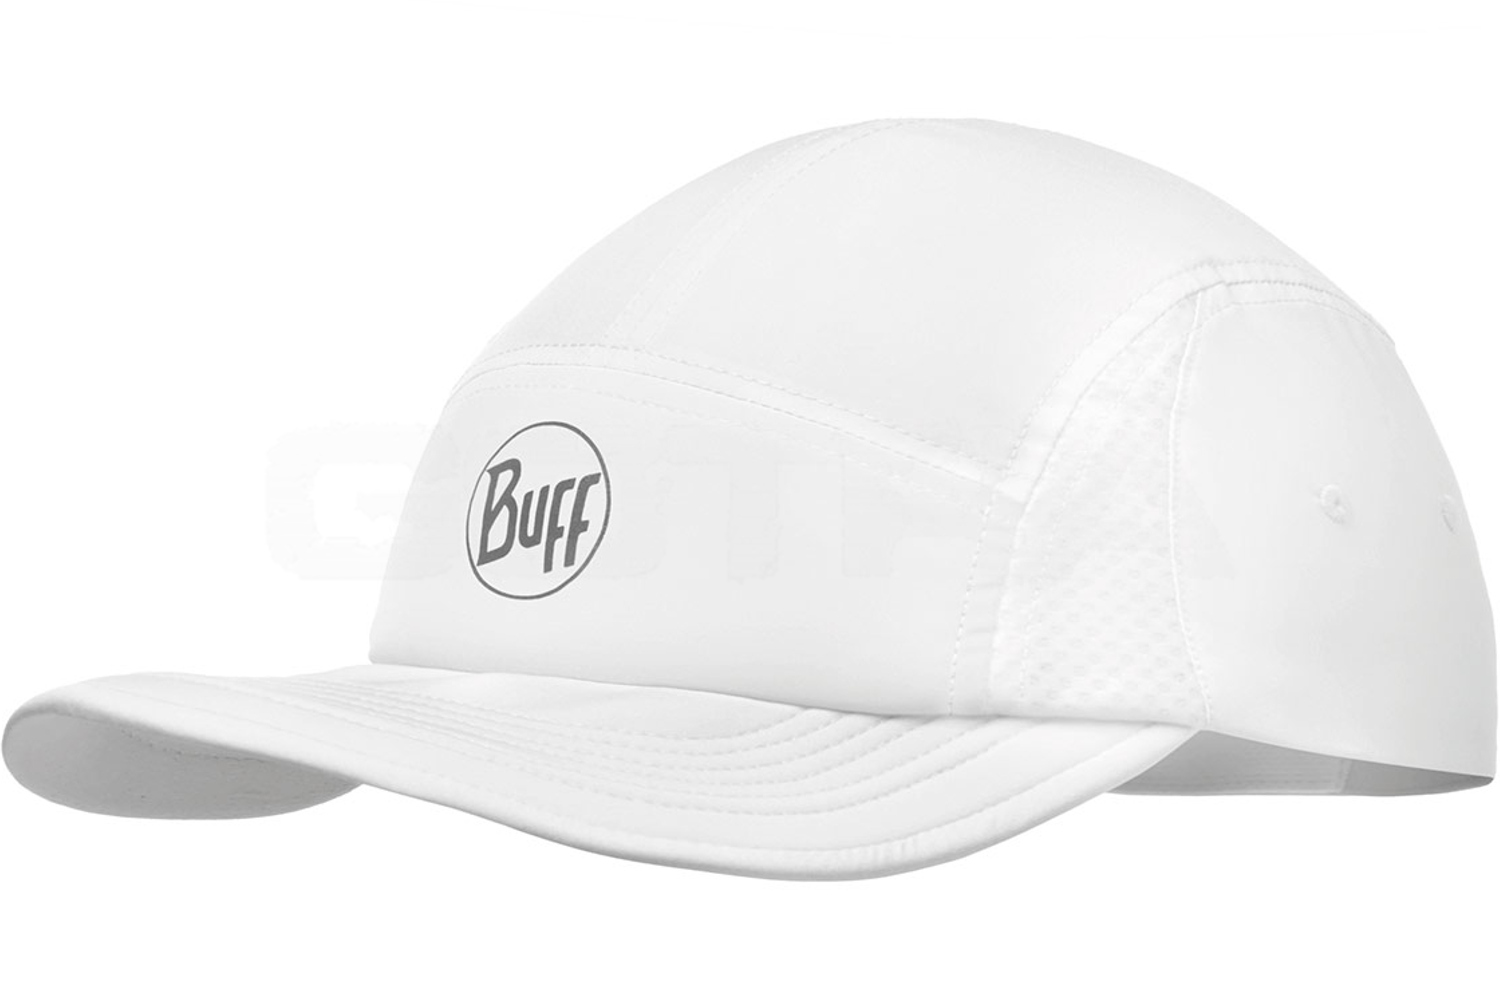 BUFF RUN CAP czapka do biegania z filtrem UV UPF50